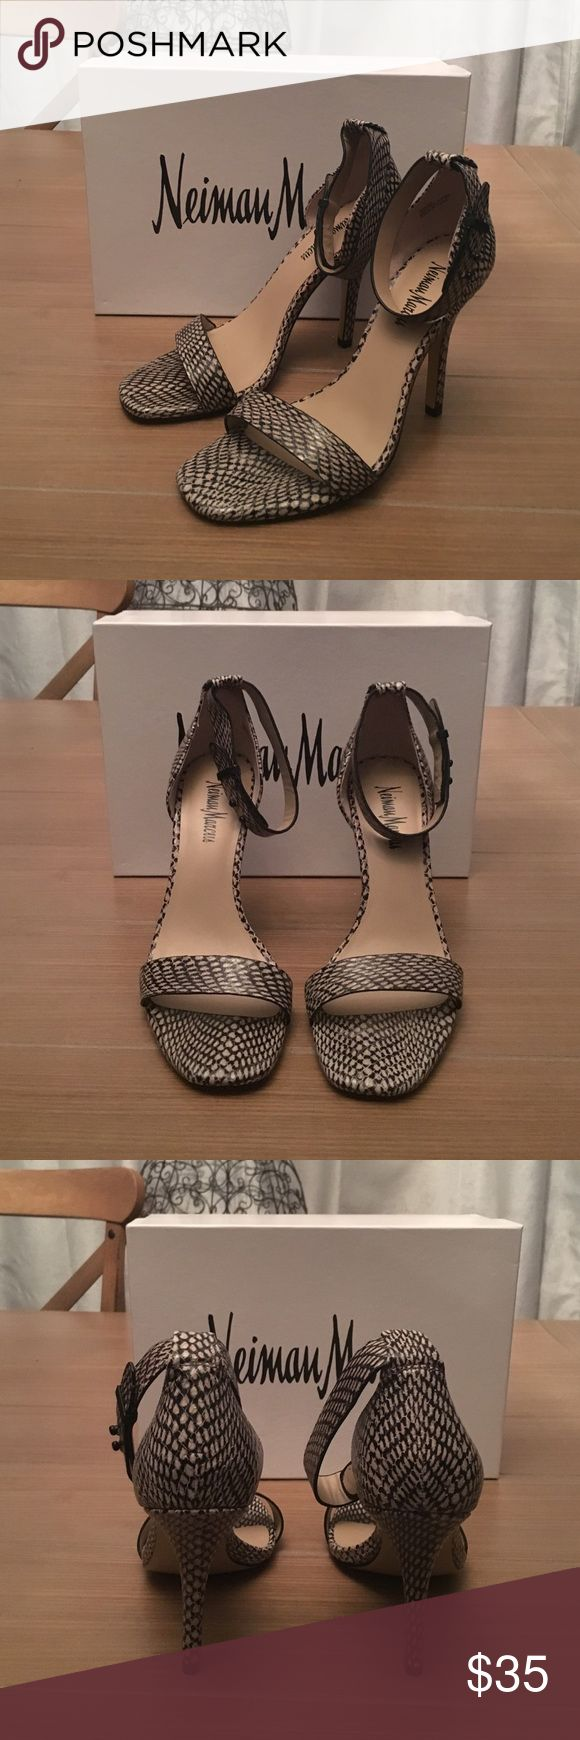 "Neiman Marcus Snake Skin Heeled Sandals Size 8 Neiman Marcus Snake 🐍 Skin Strapped Heeled Sandals Sz 8. New with box and never worn. Heel stands about 4.25"" tall. Neiman Marcus Shoes Sandals"